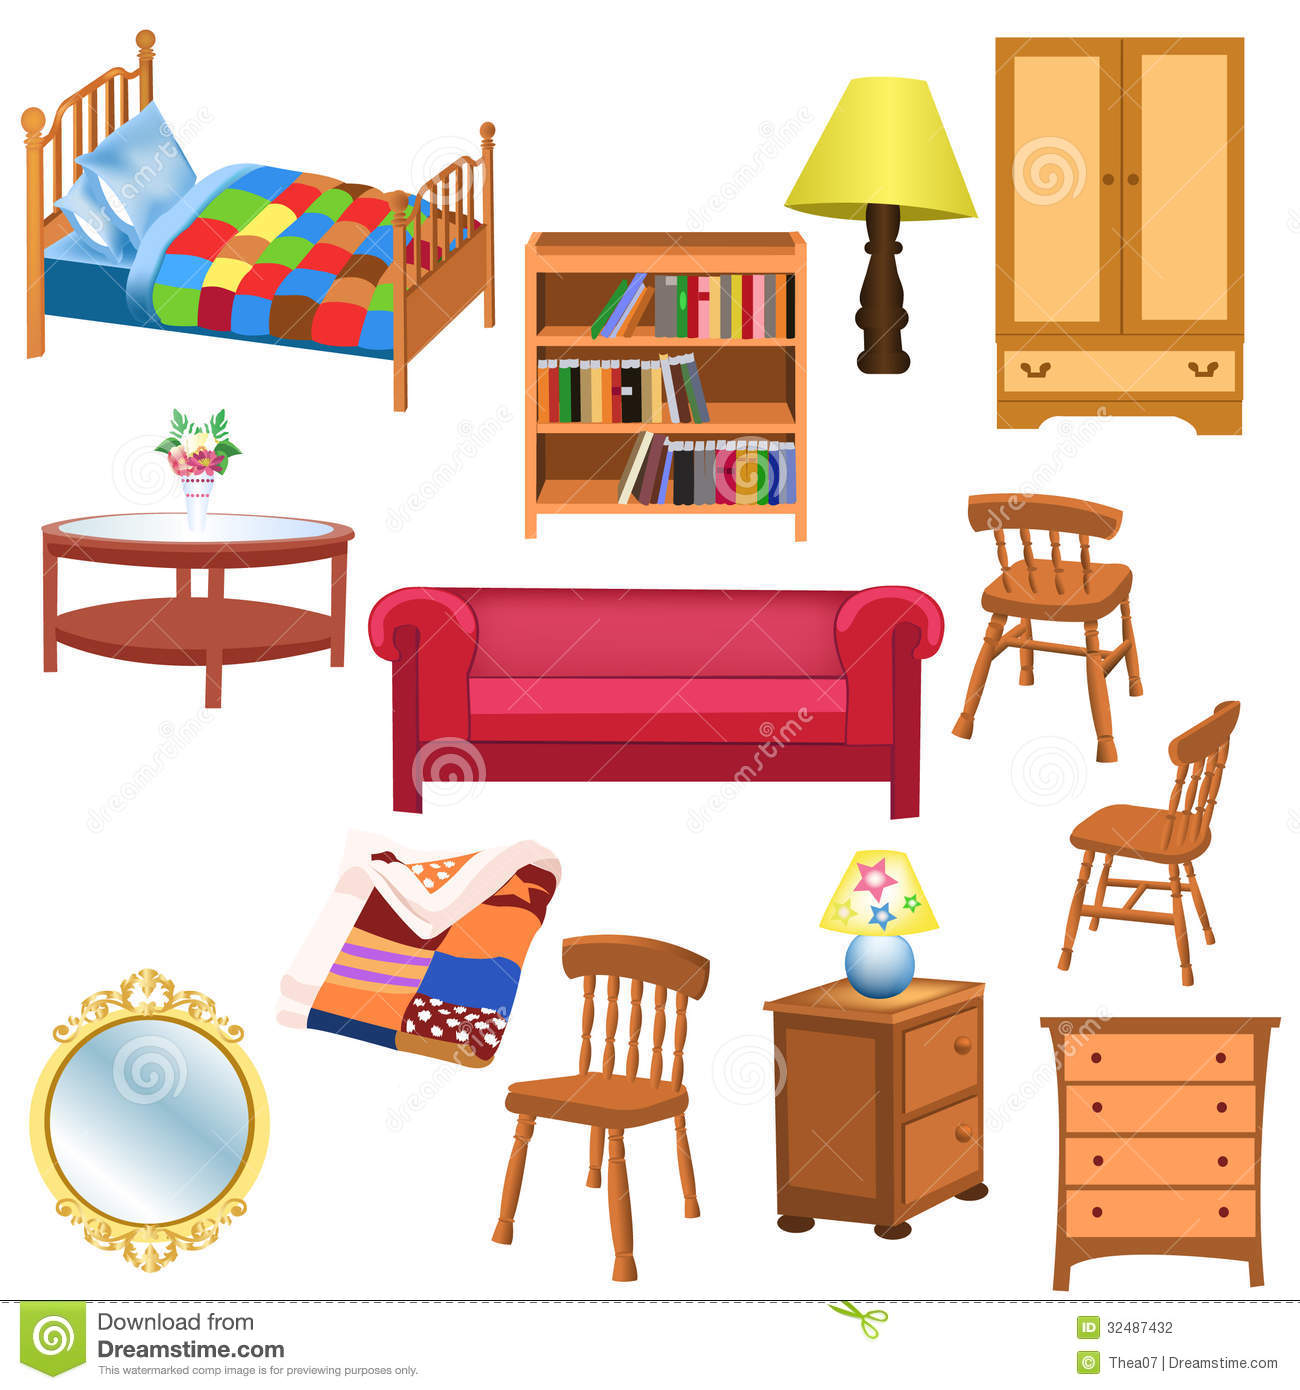 Clipart furniture pictures.